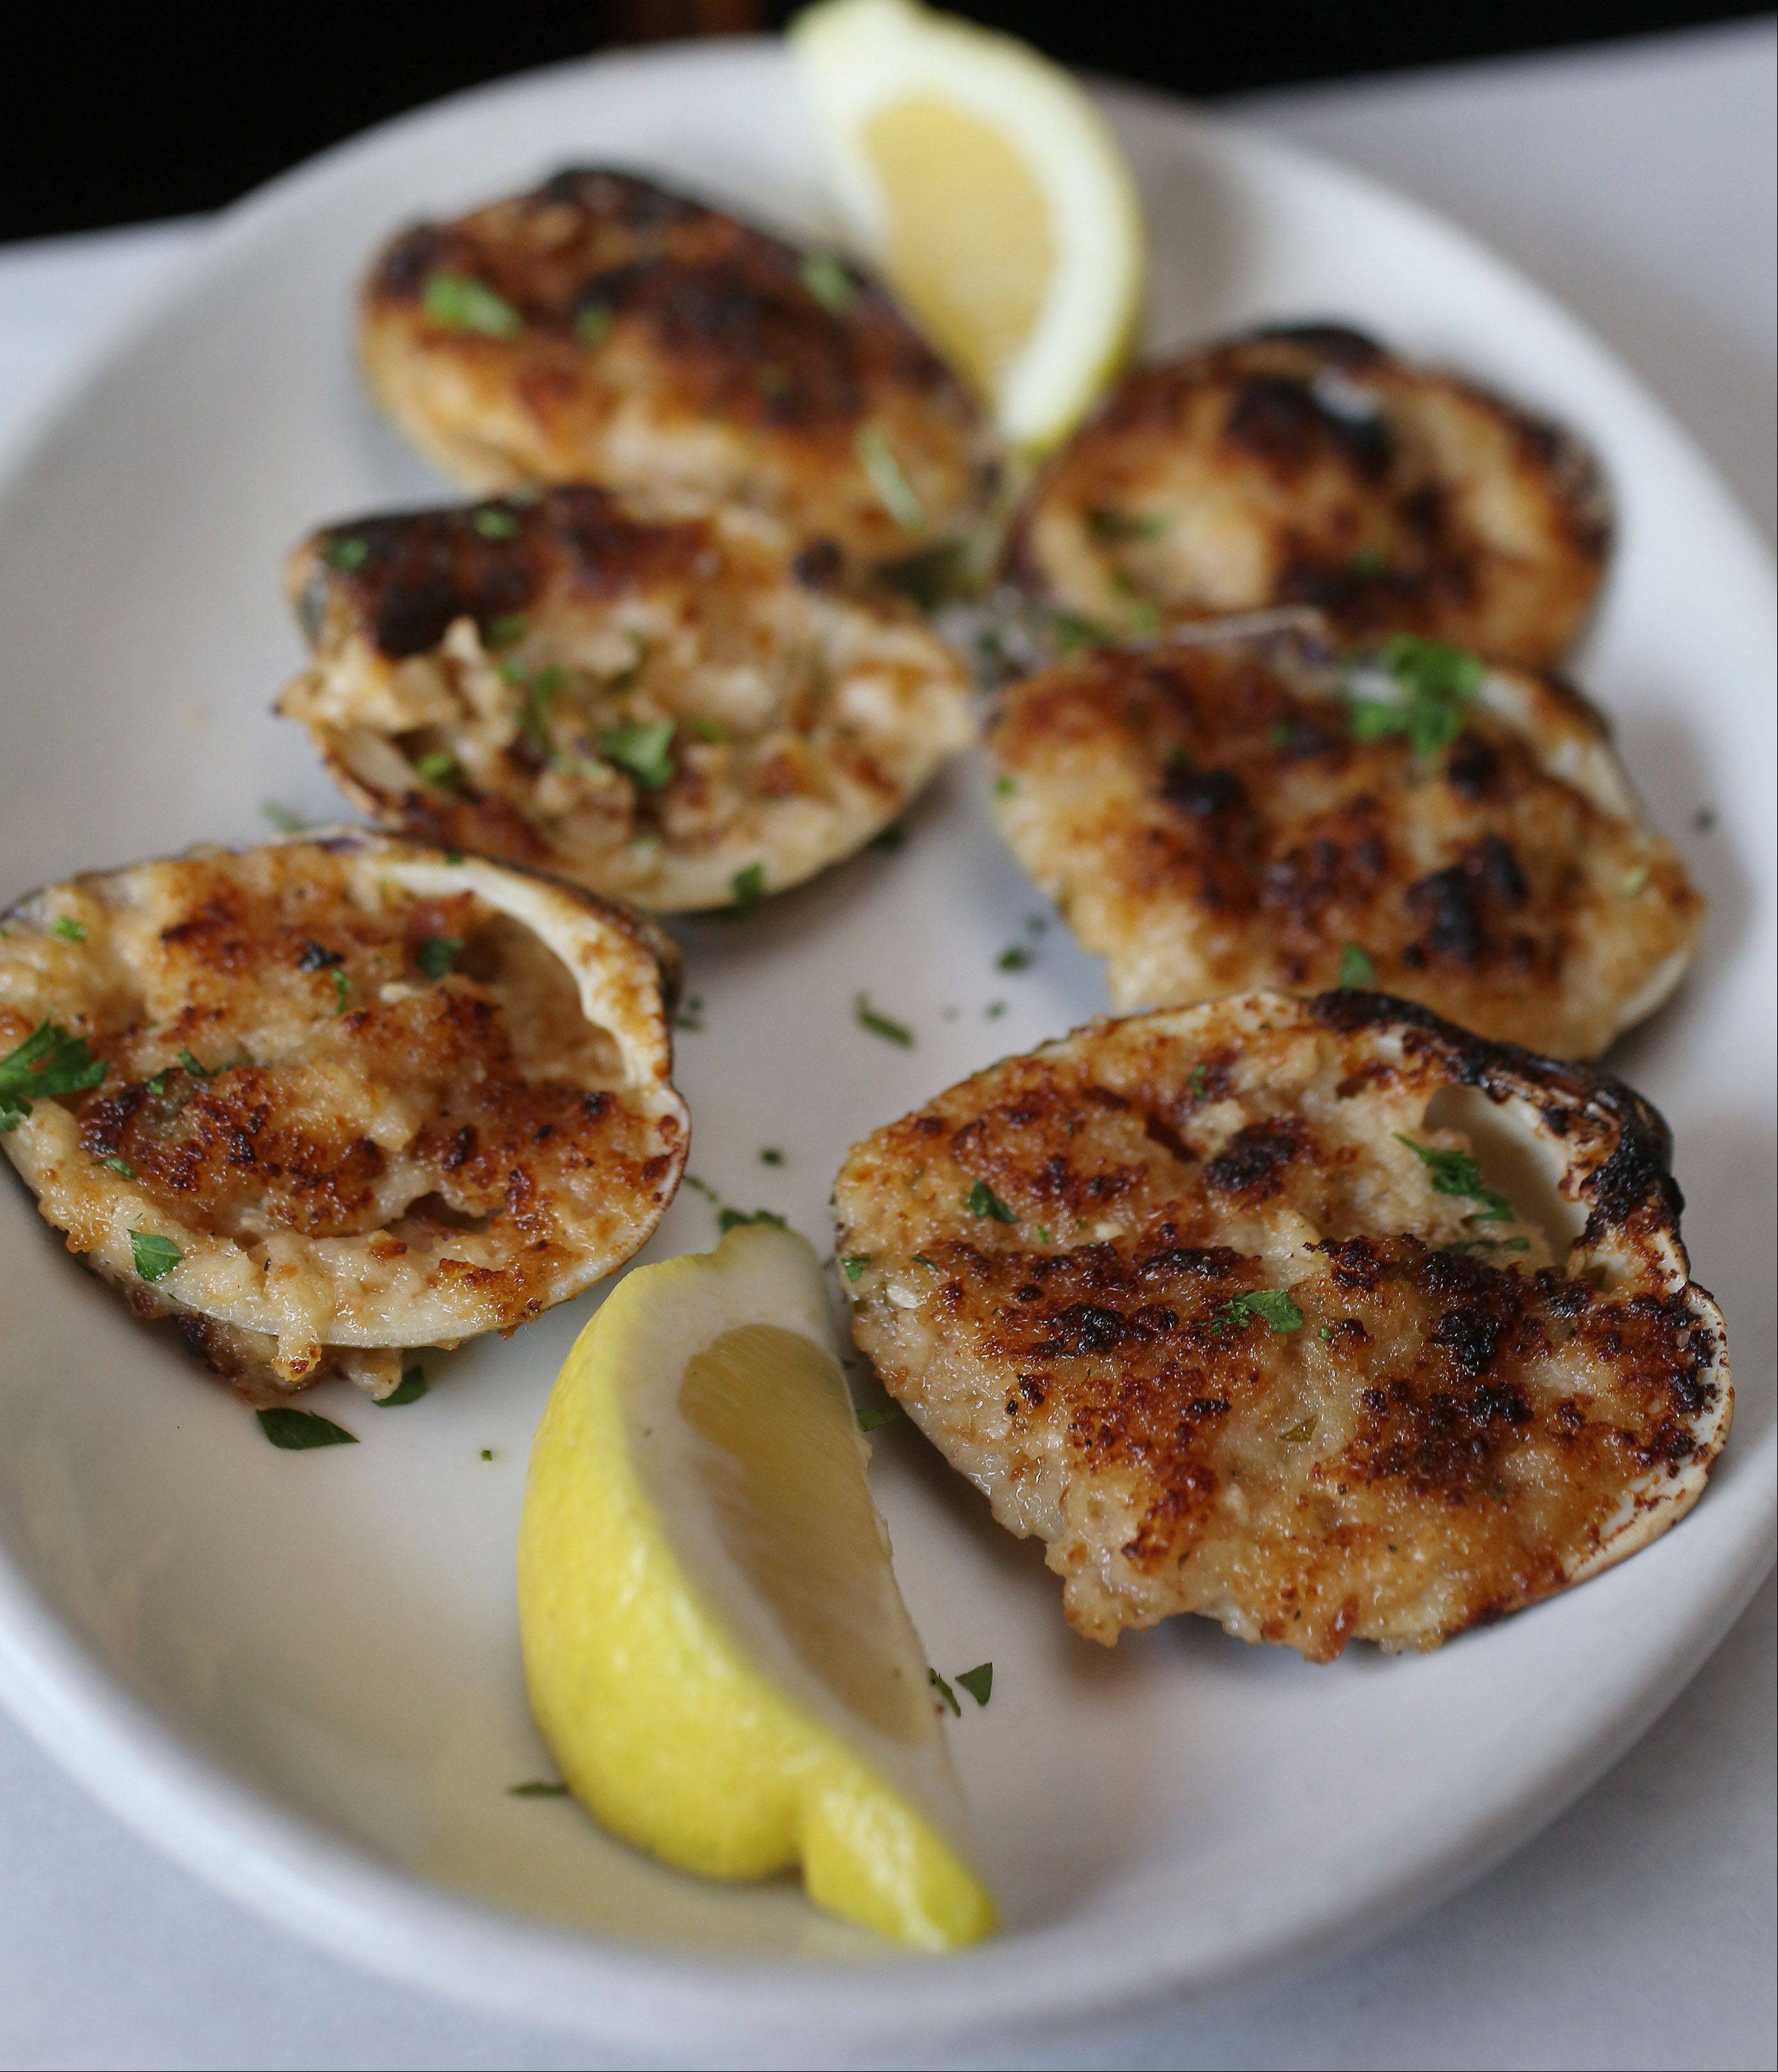 Baked clams is one of the many popular dishes at DiPiero's Ristorante in Lake Zurich.